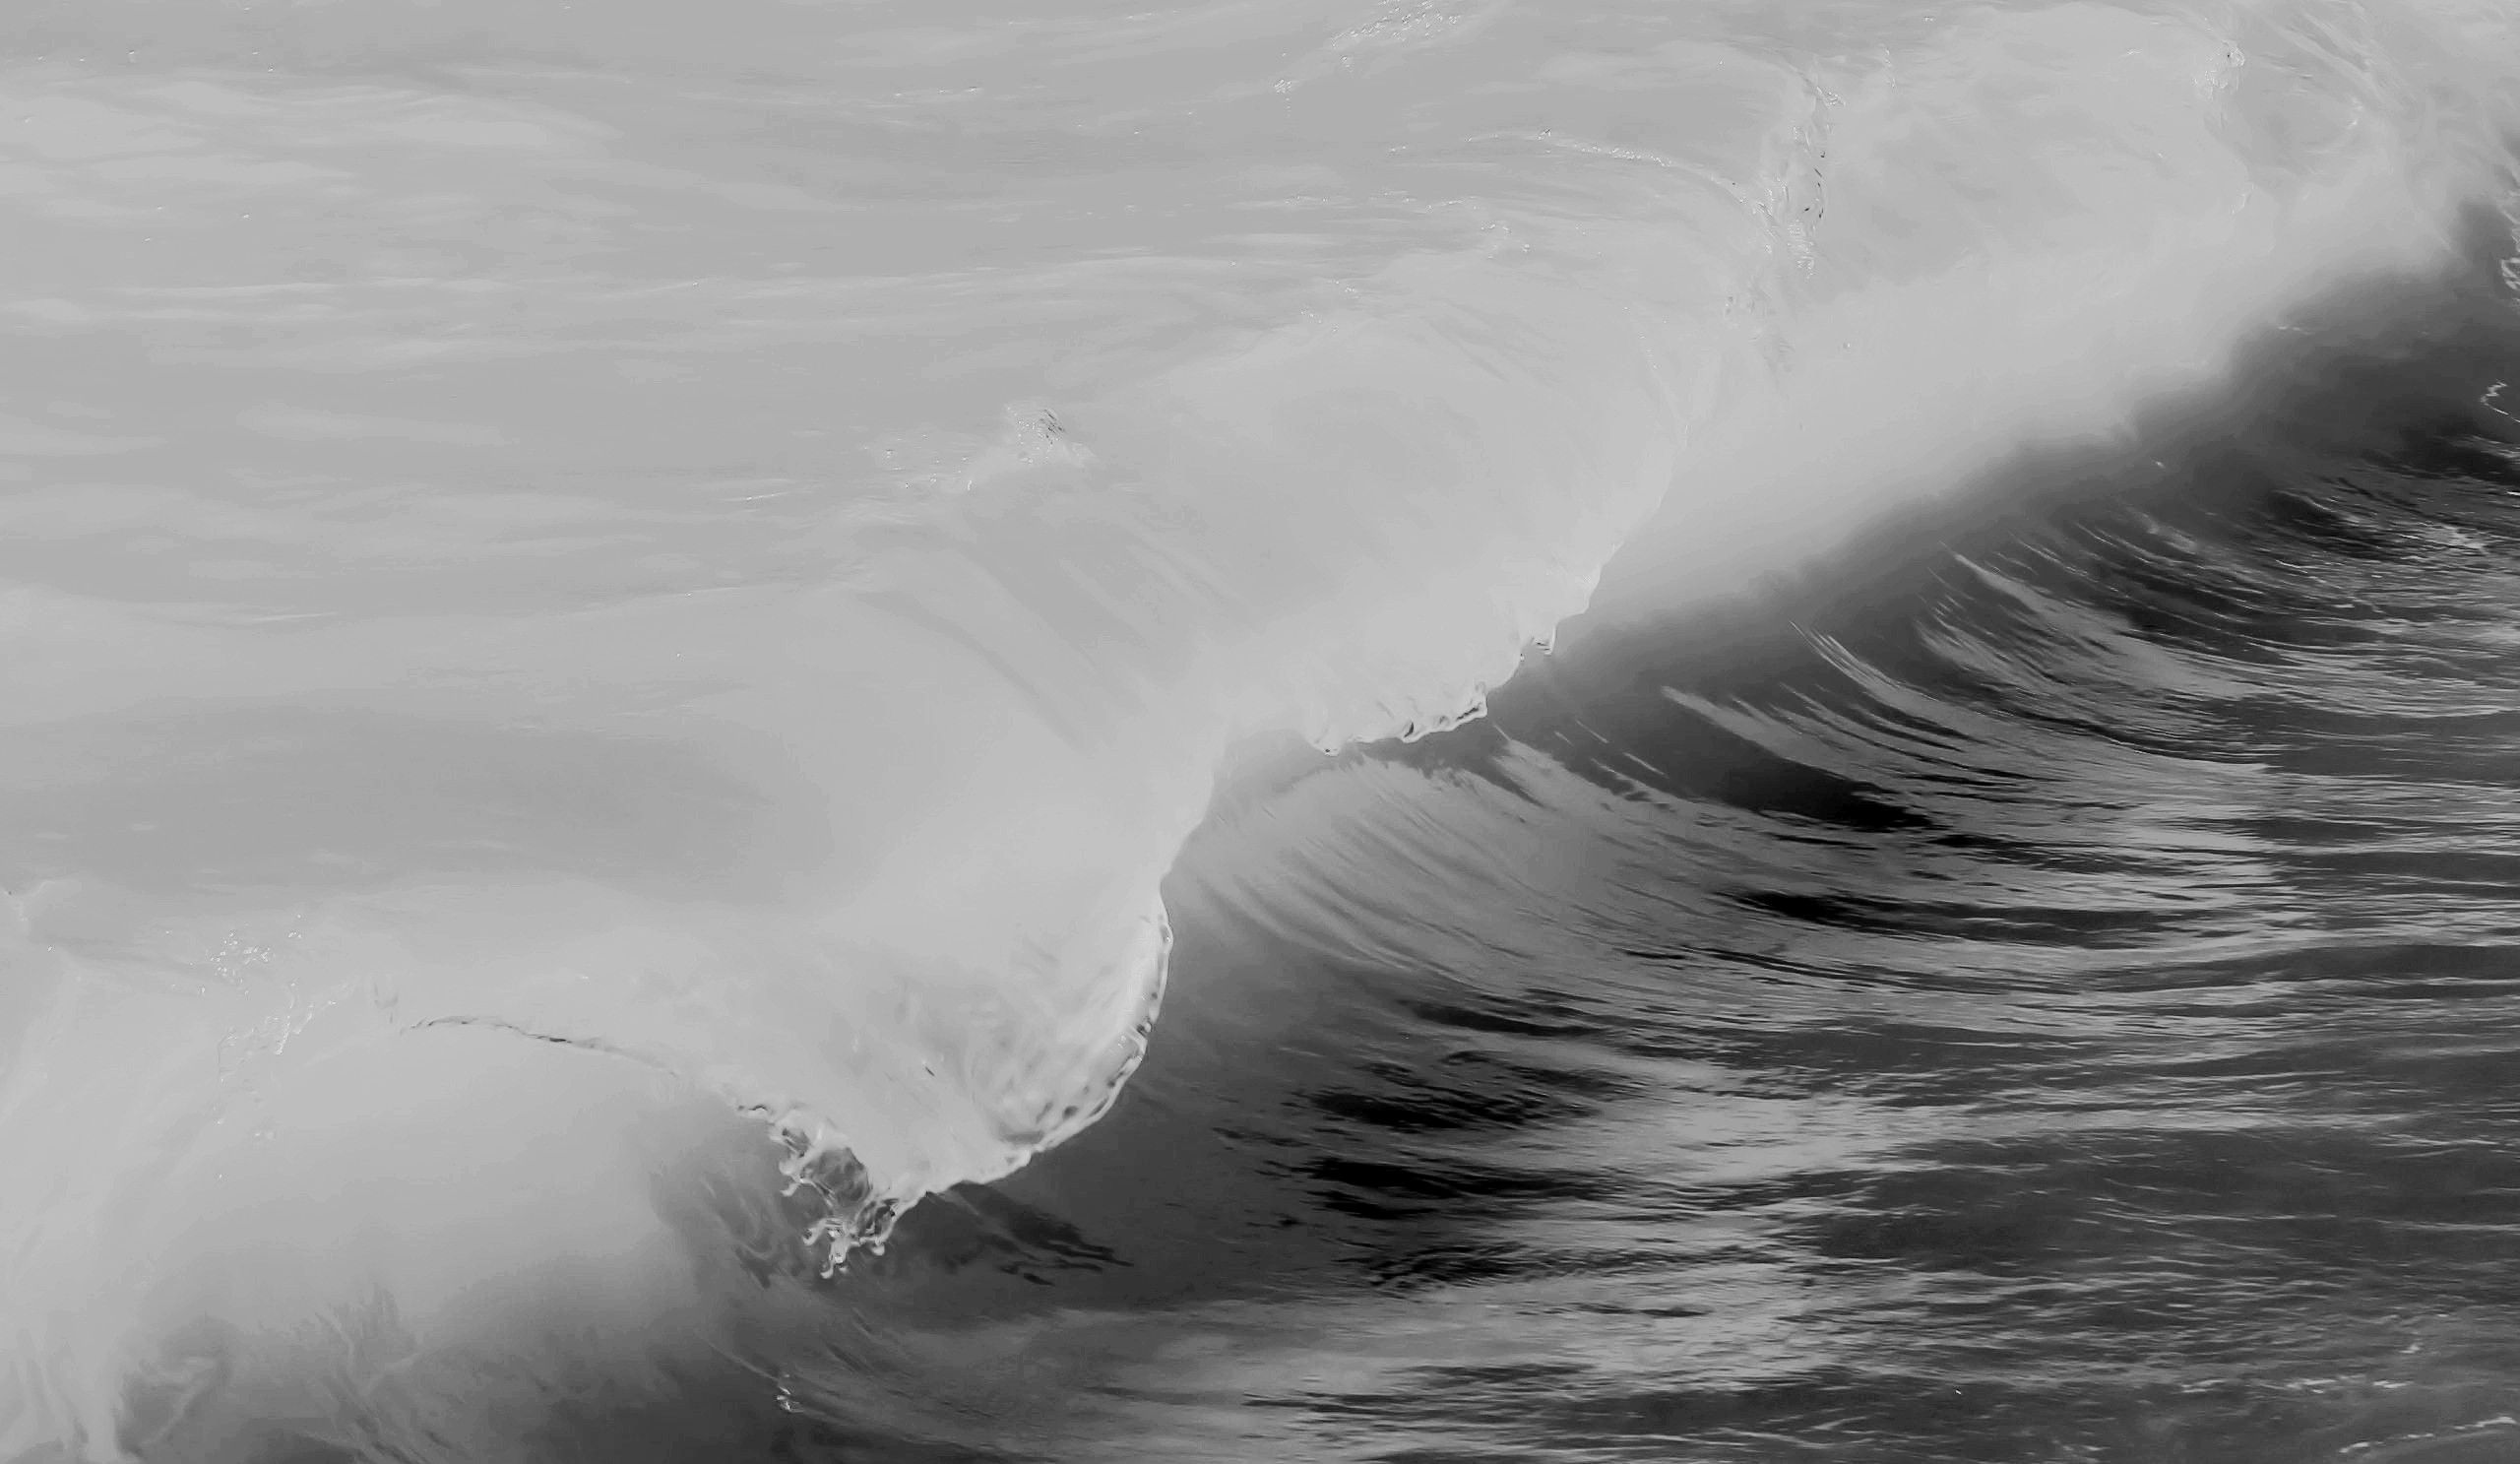 Balck And White Wallpaper: Download Black And White Ocean Wallpaper Gallery